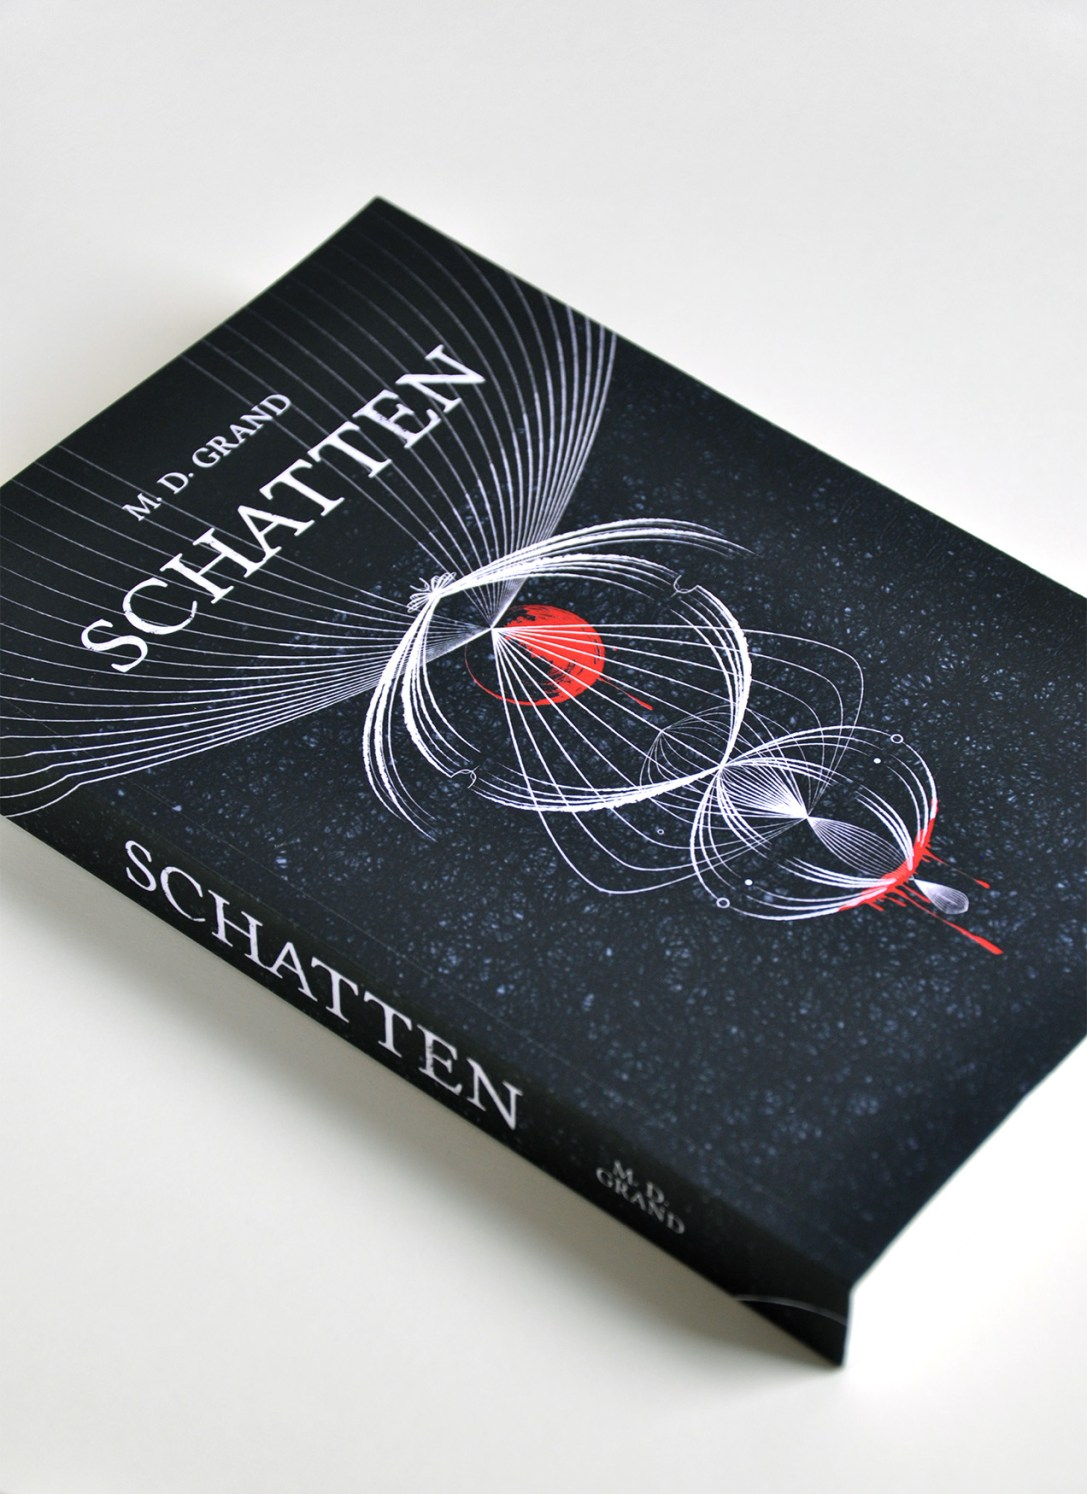 SCHATTEN | cover artwork